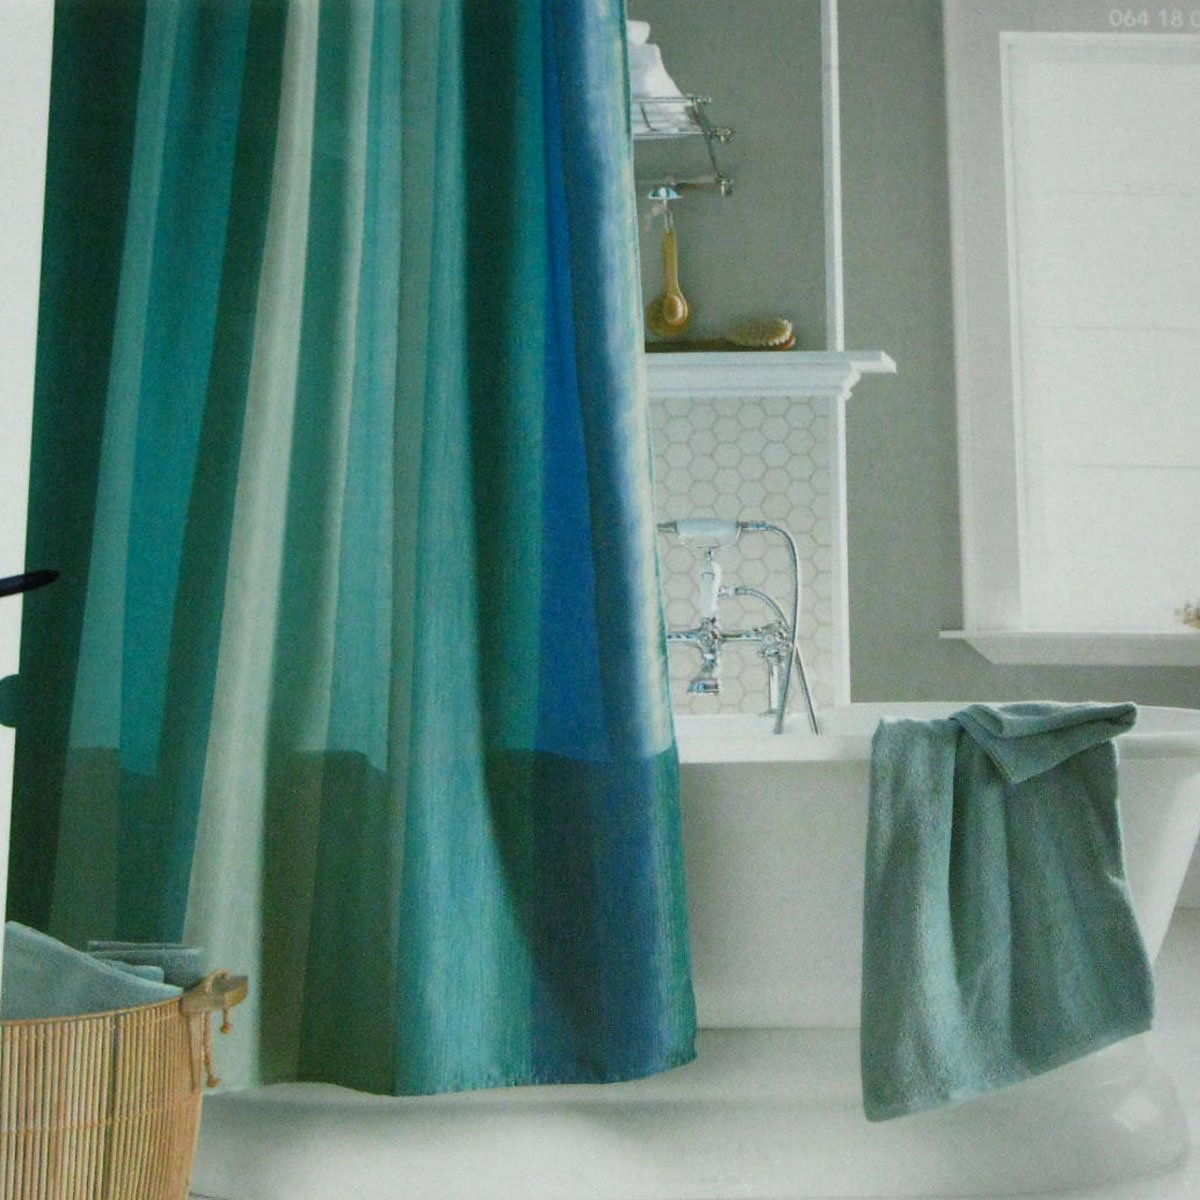 multistripe blue aqua green fabric shower curtain home threshold